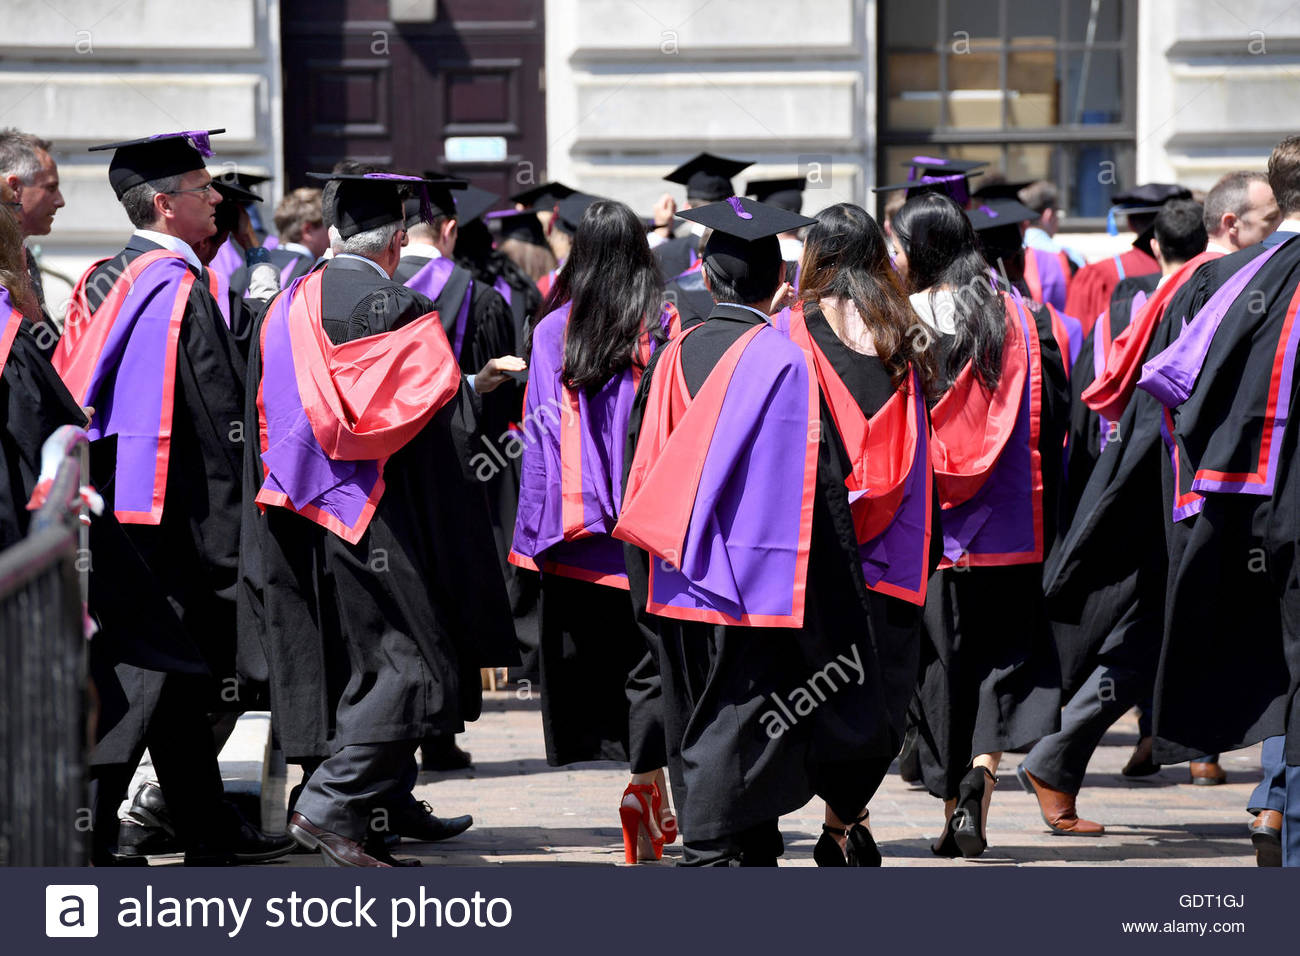 Amazing Academic Gown Colours Image - Images for wedding gown ideas ...